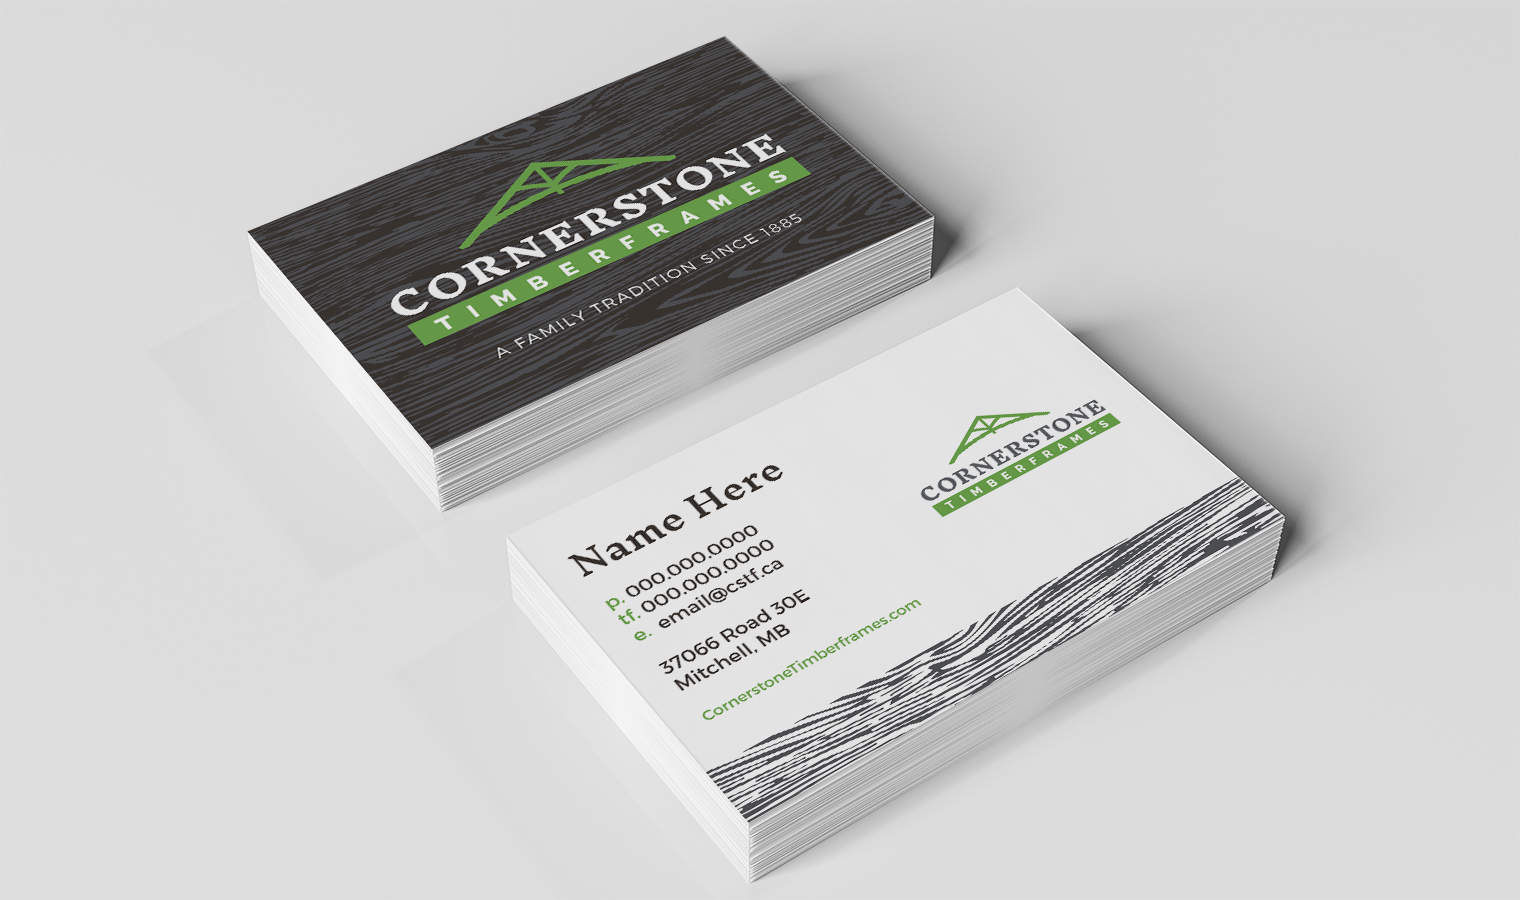 Cornertsone Timberframes Business Cards